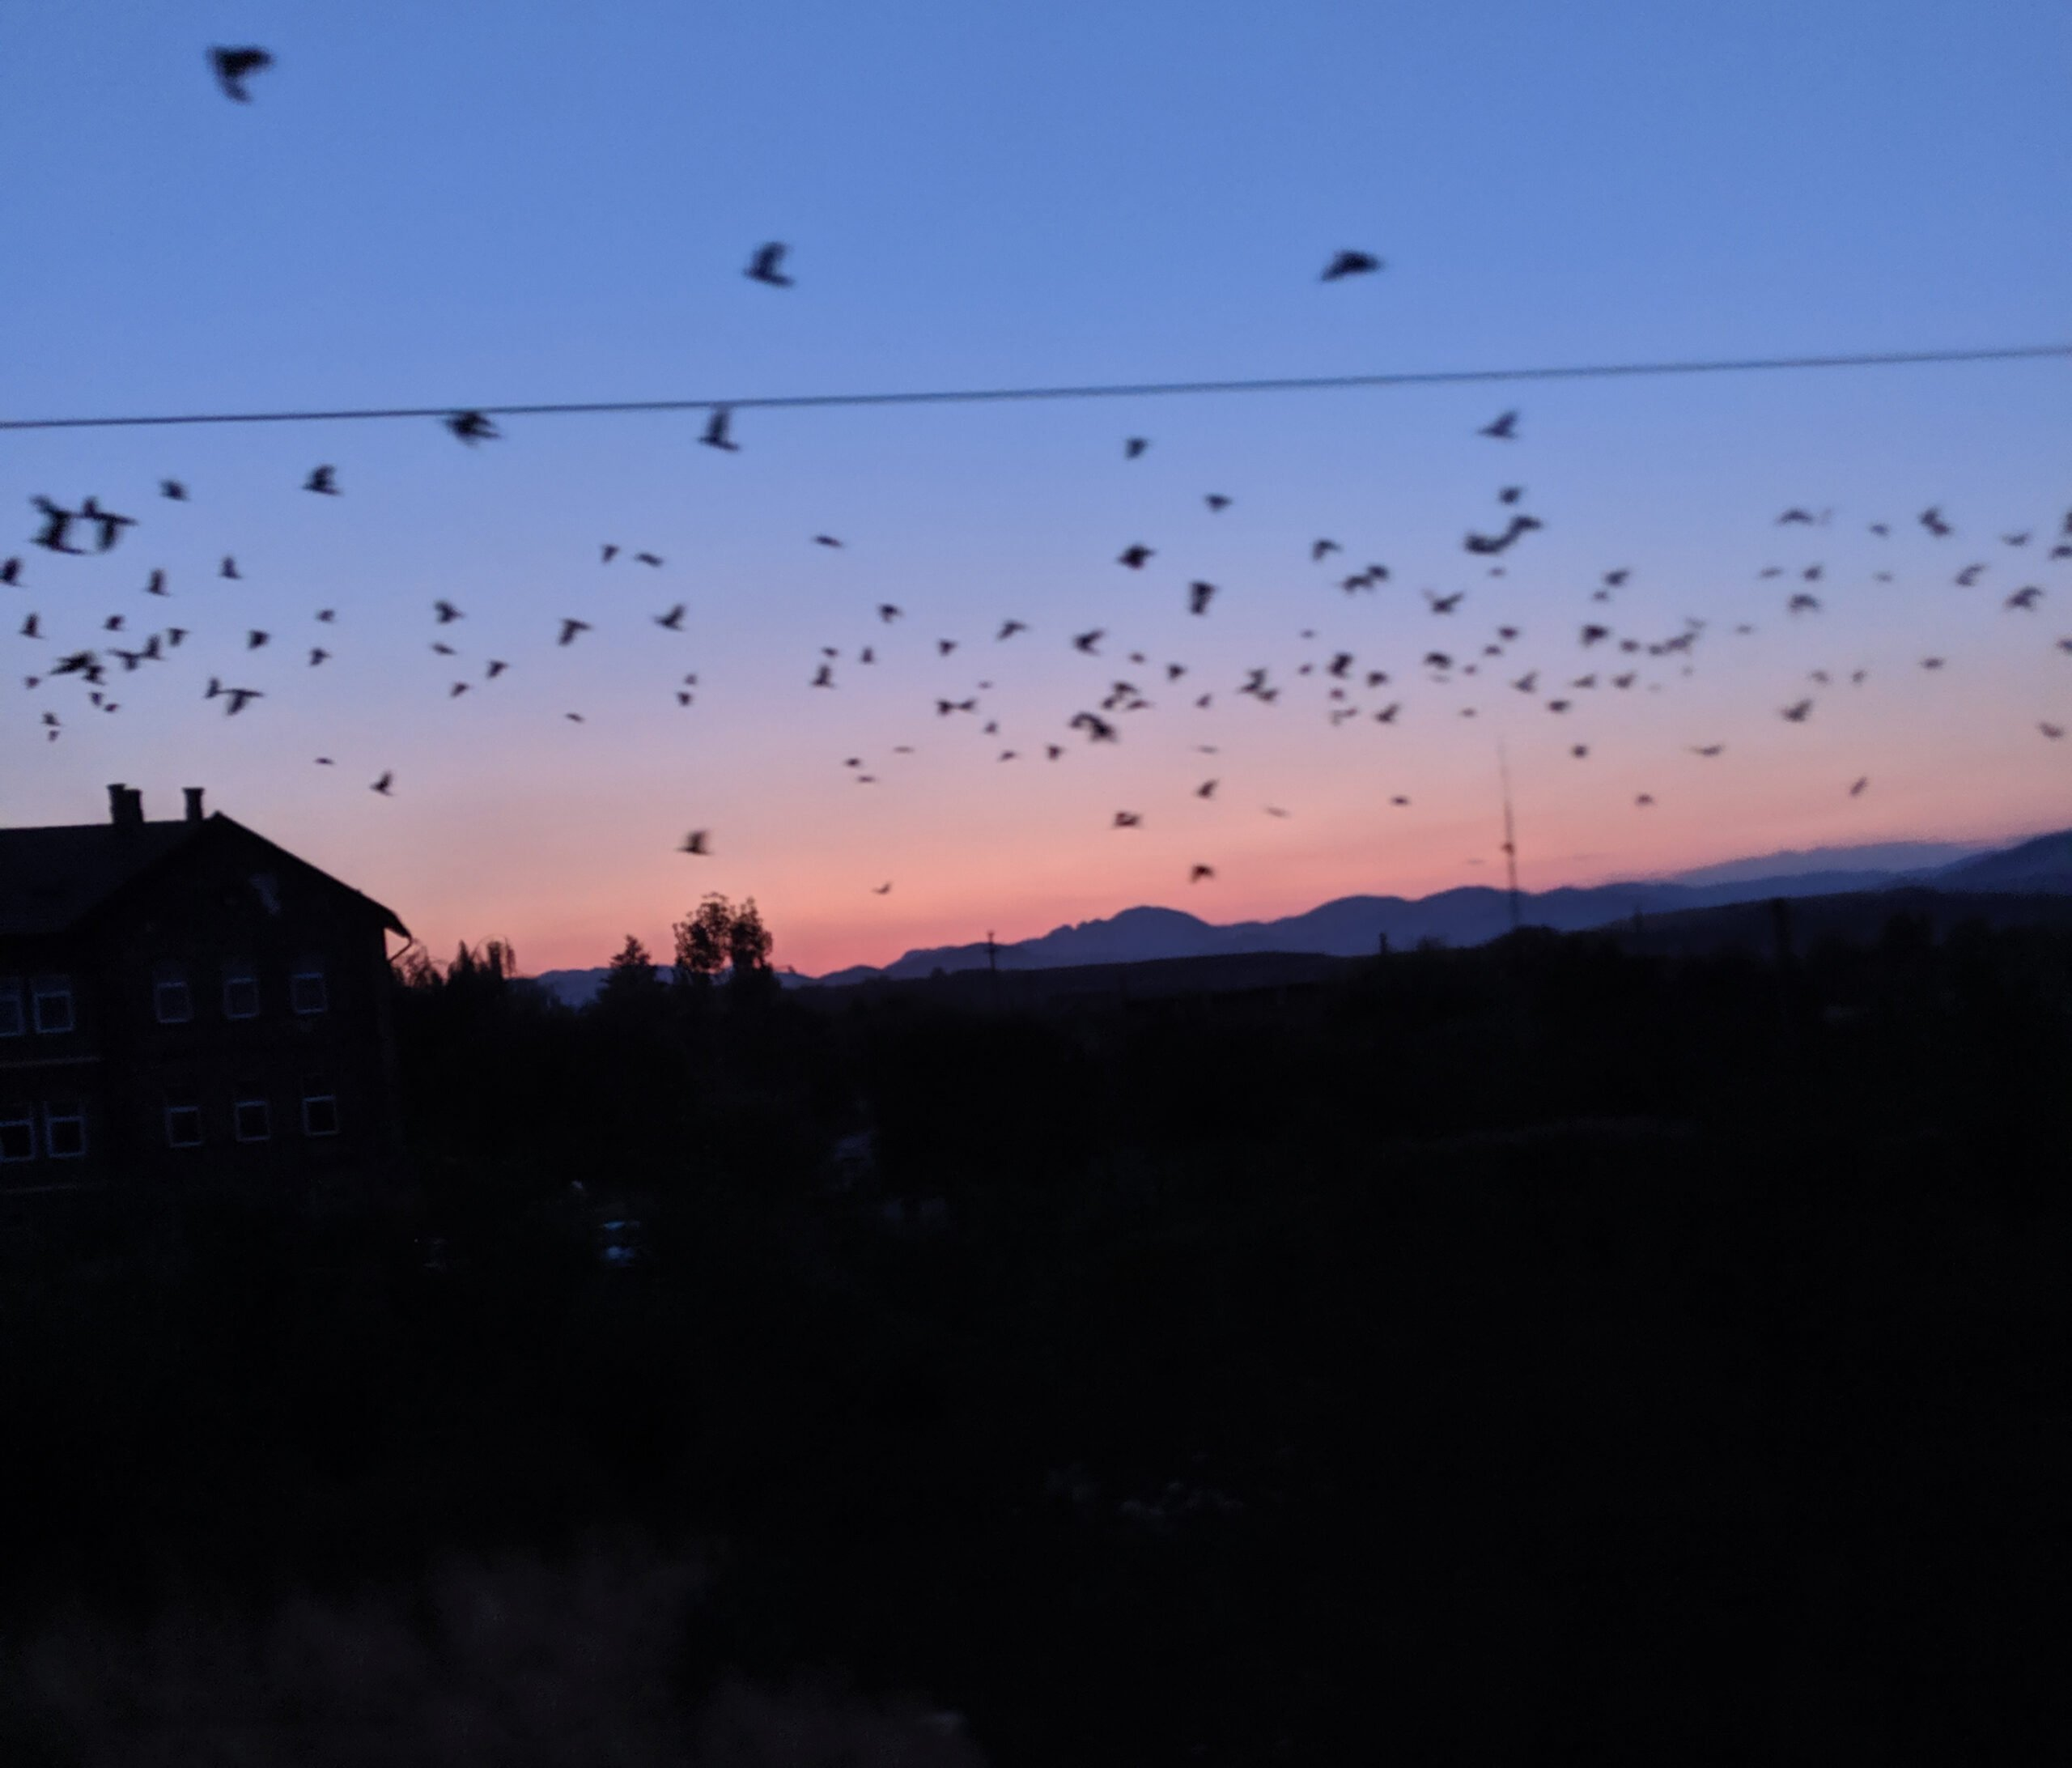 A sunset sky in romania filled with black winged creatures.